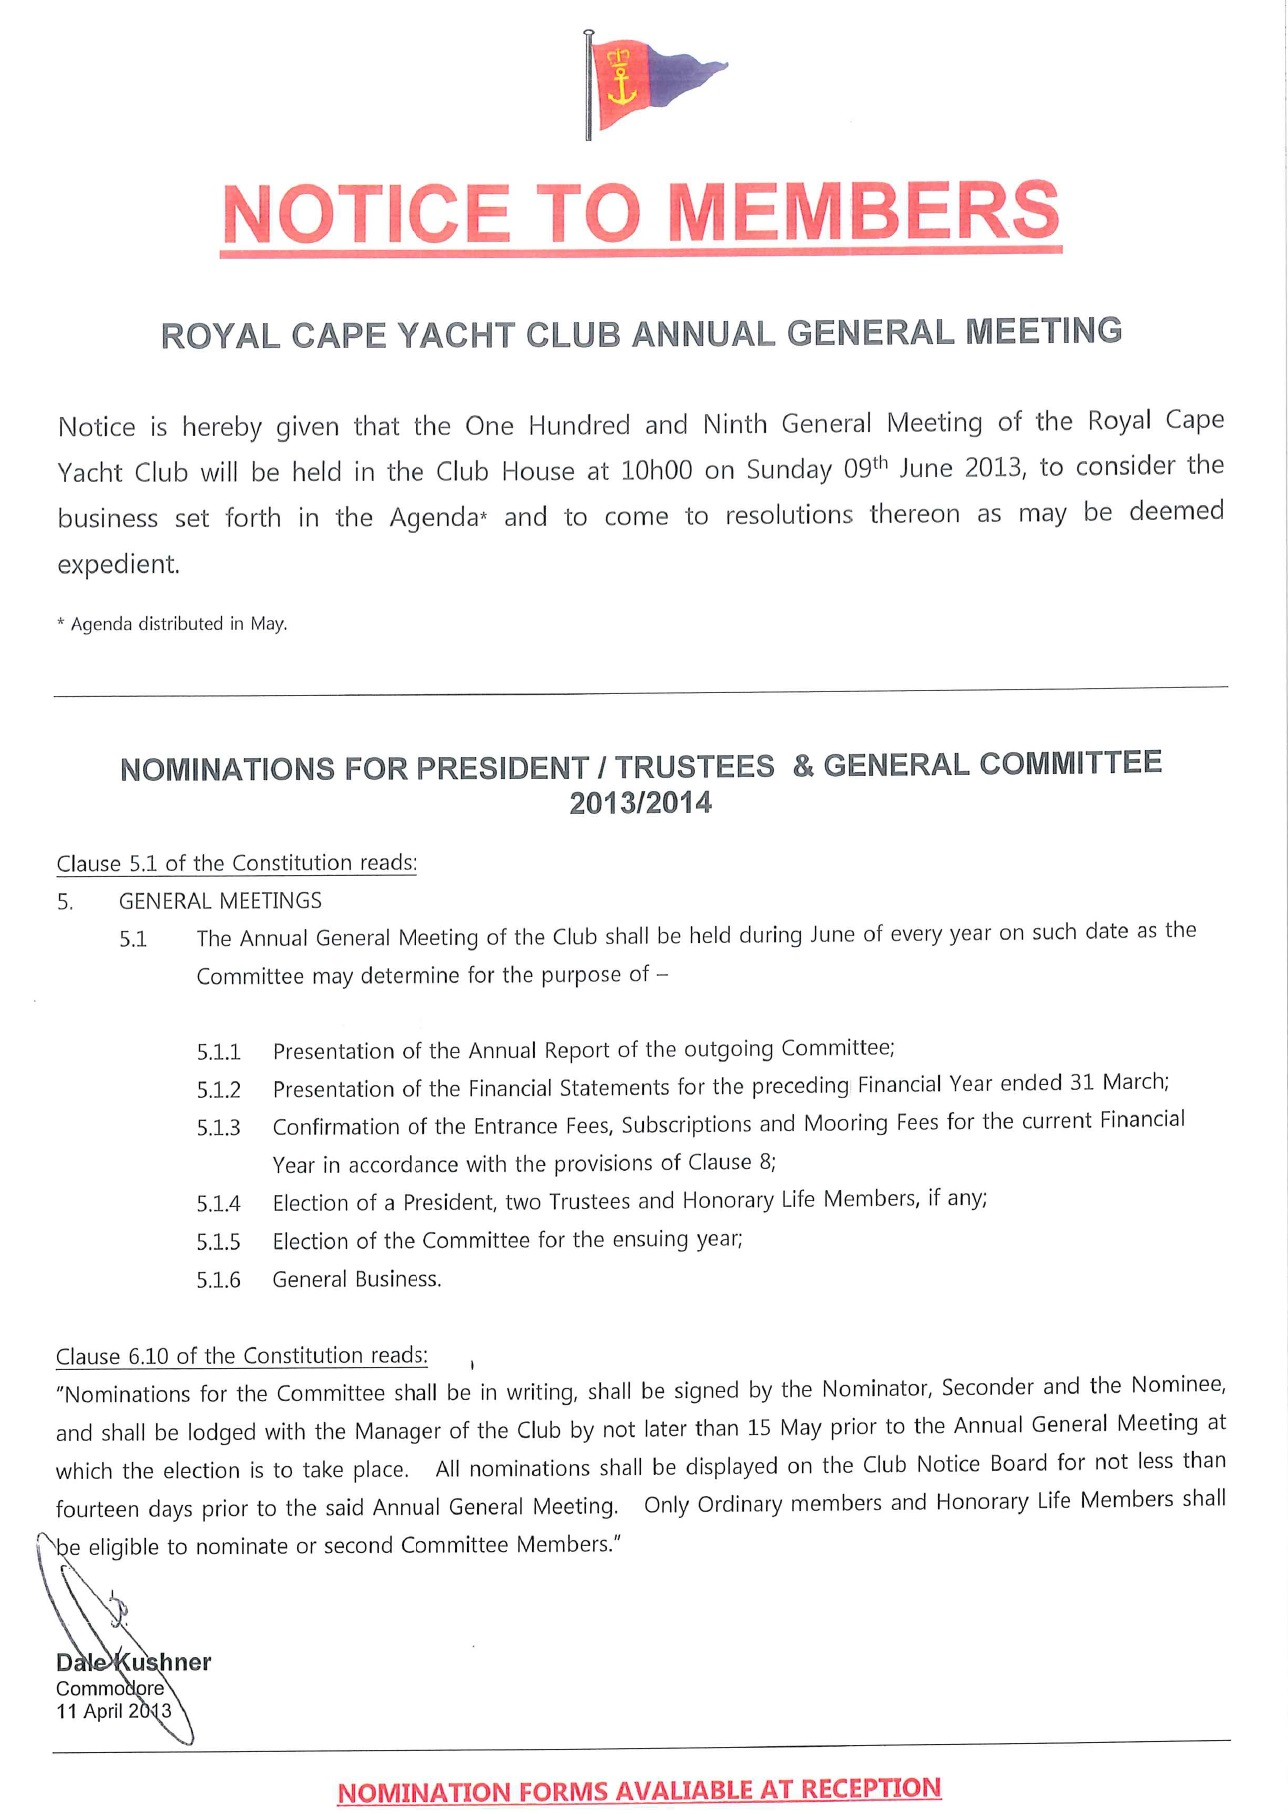 Notice of 109th annual general meeting royal cape yacht club.